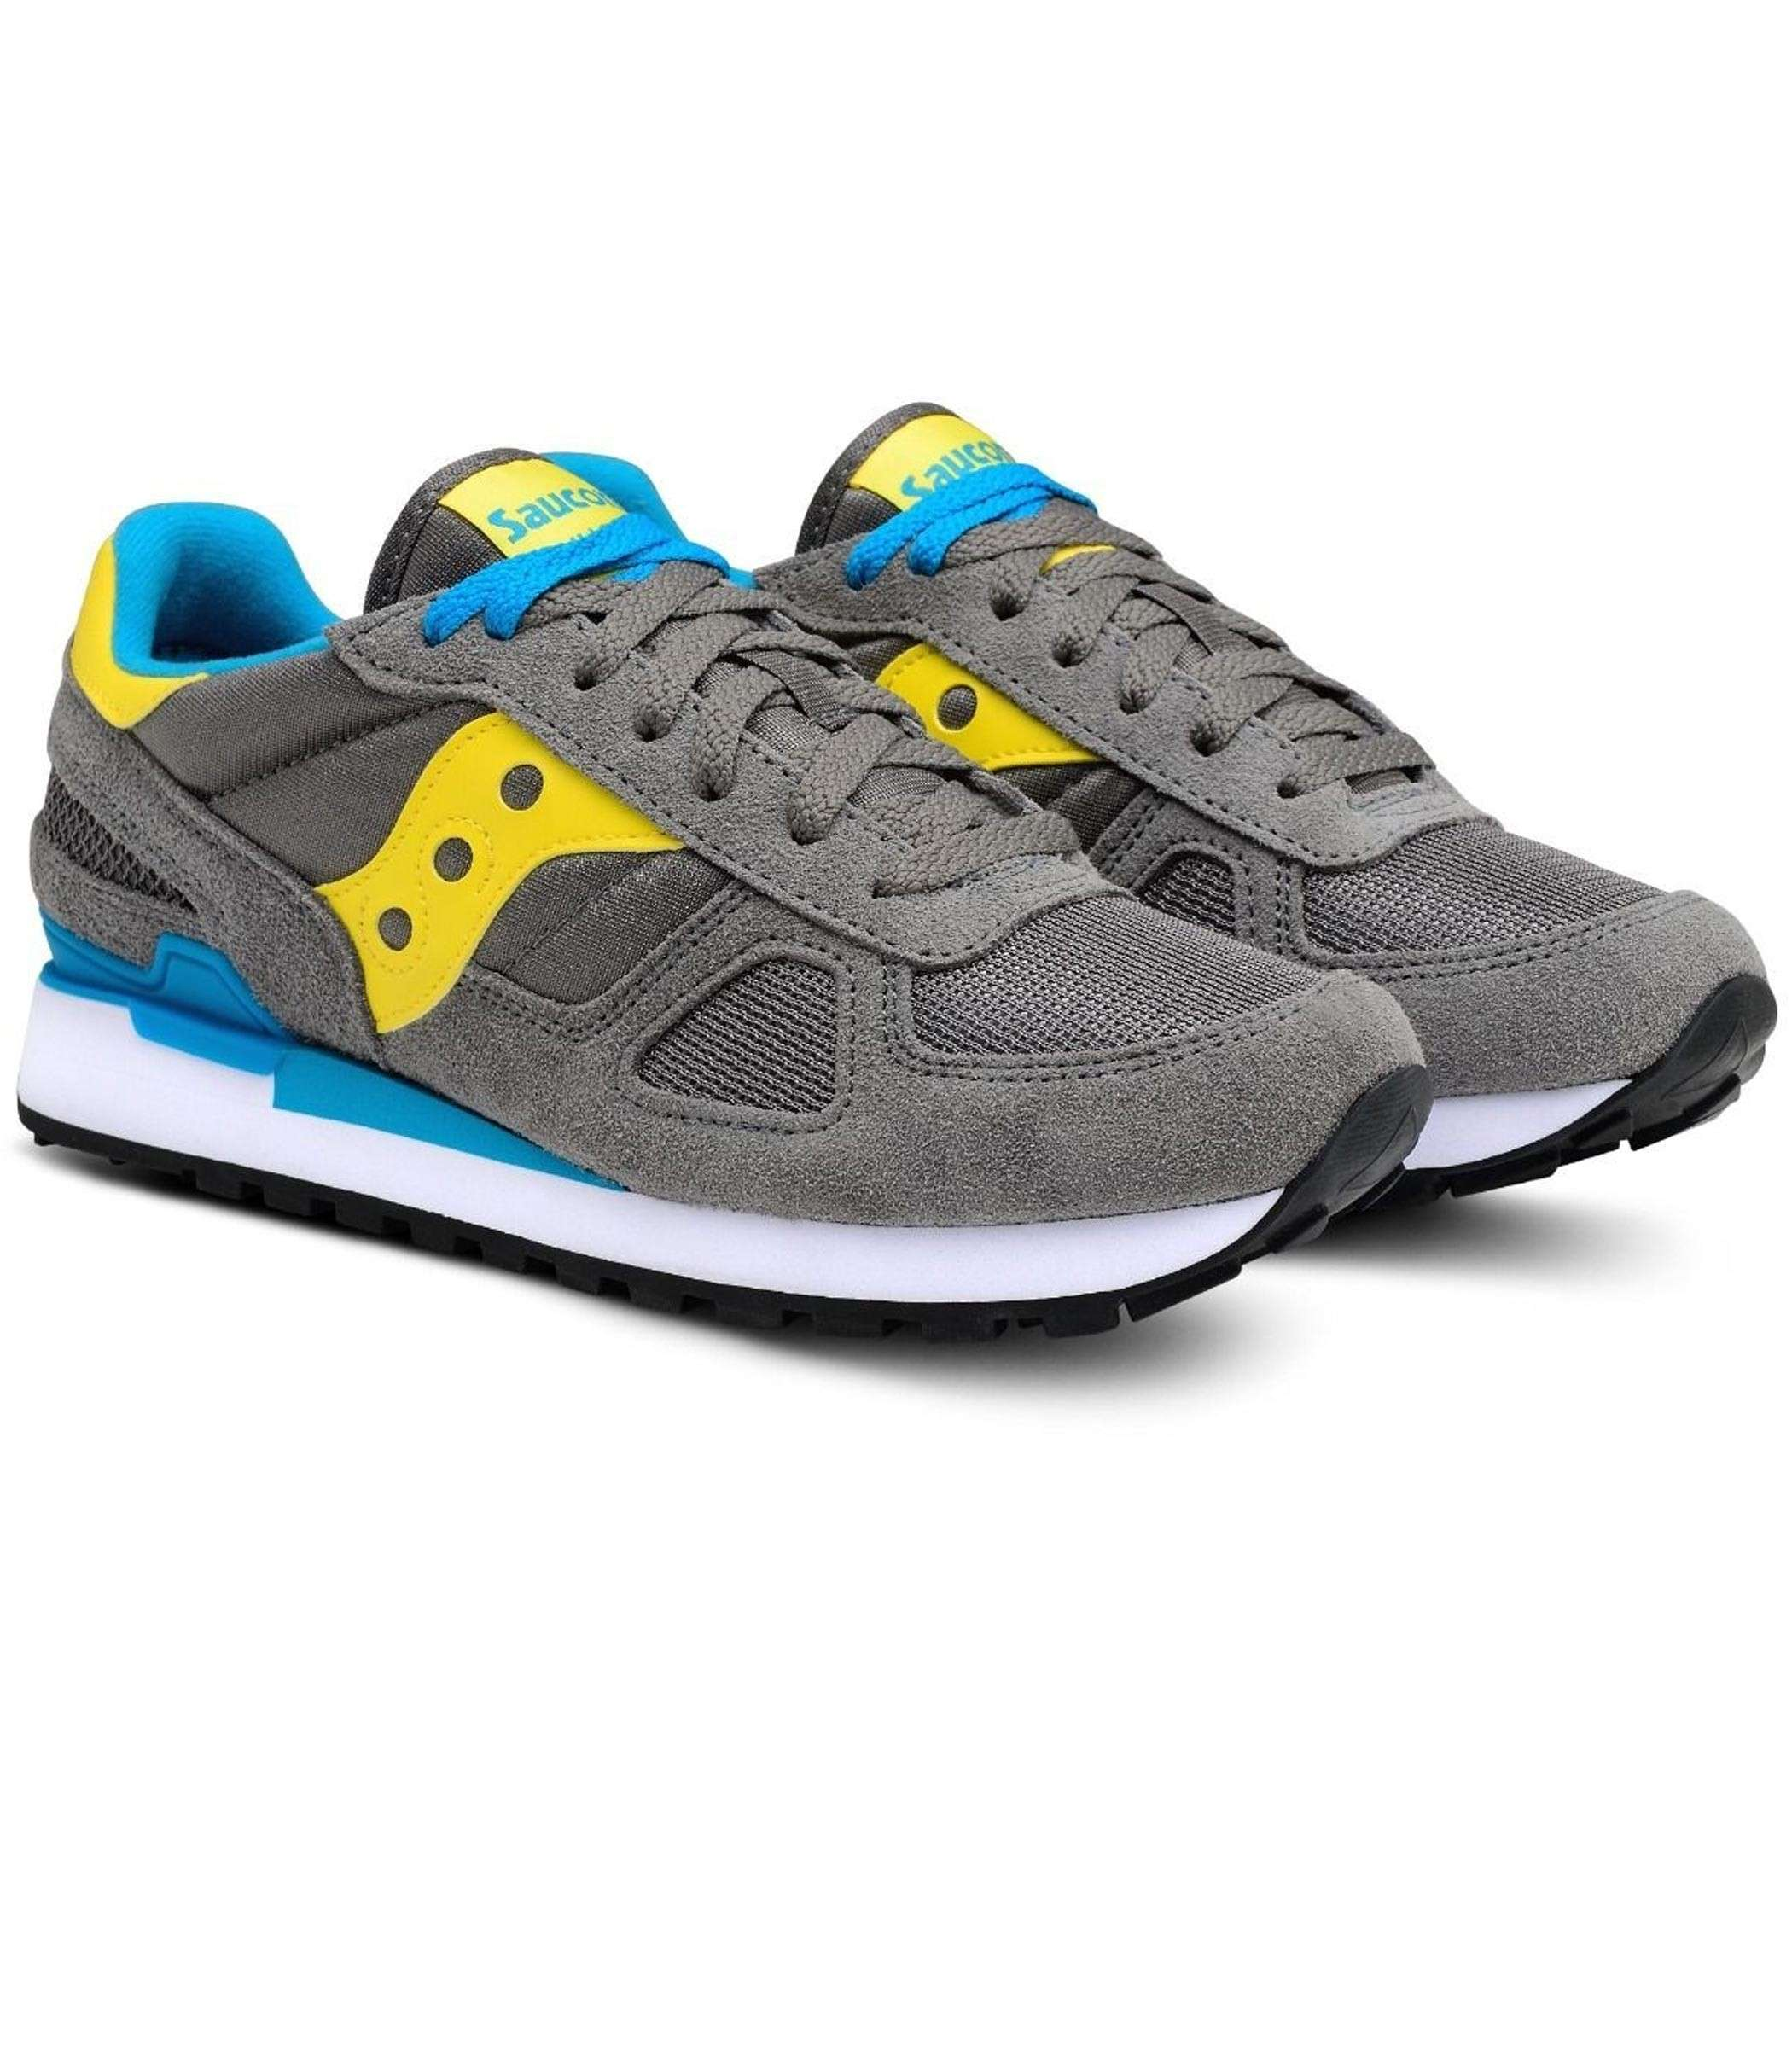 https://www.parmax.com/media/catalog/product/a/i/AI-Outlet_Parmax-Sneackers-Saucony-S2108-535-B.jpg